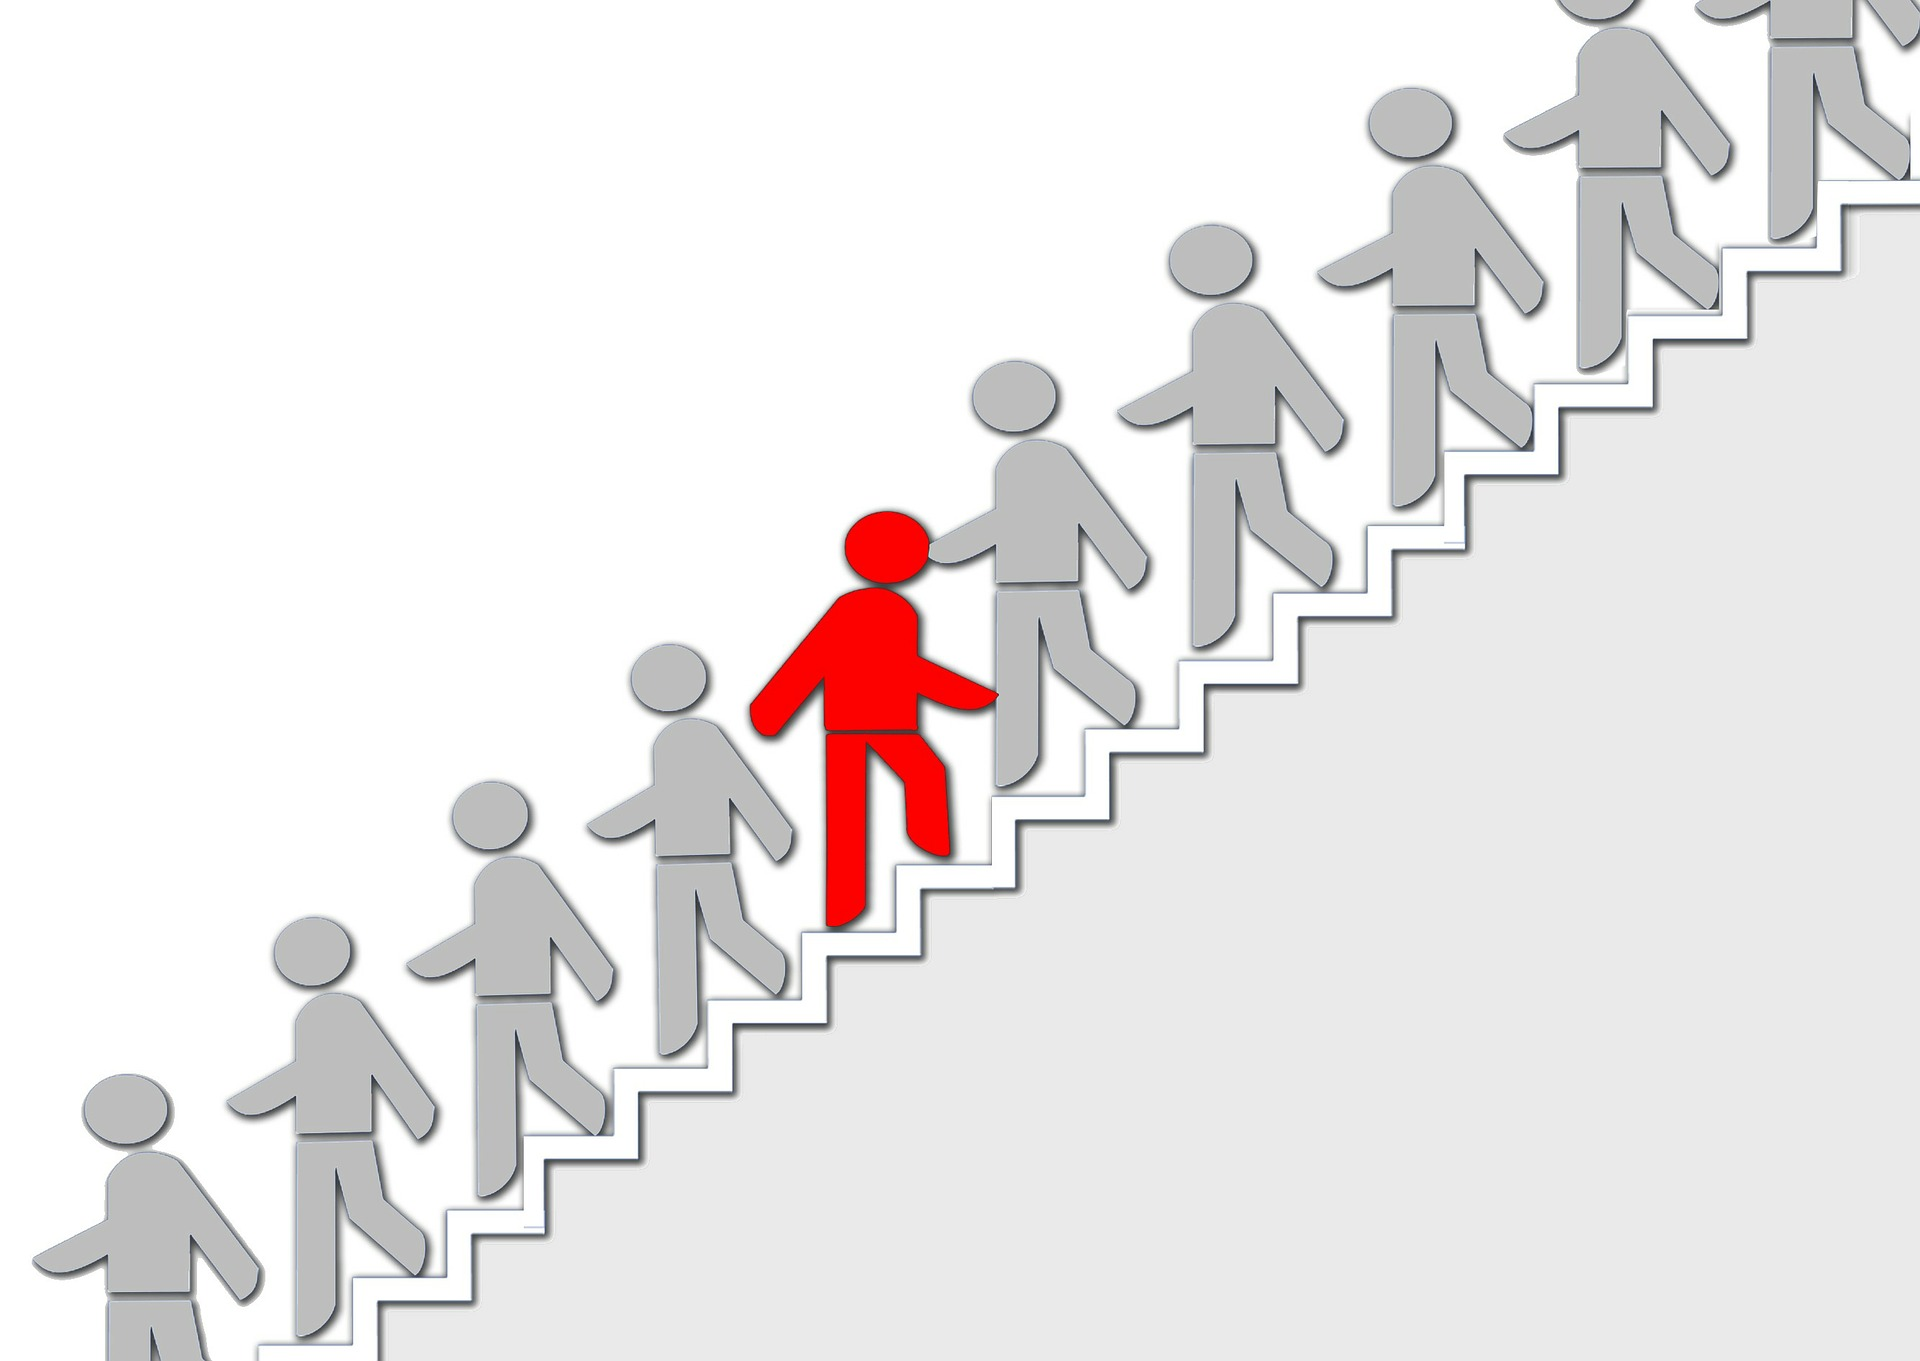 Image of several grey silhouettes walking down a set of stairs. One red individual is walking up the stairs instead.